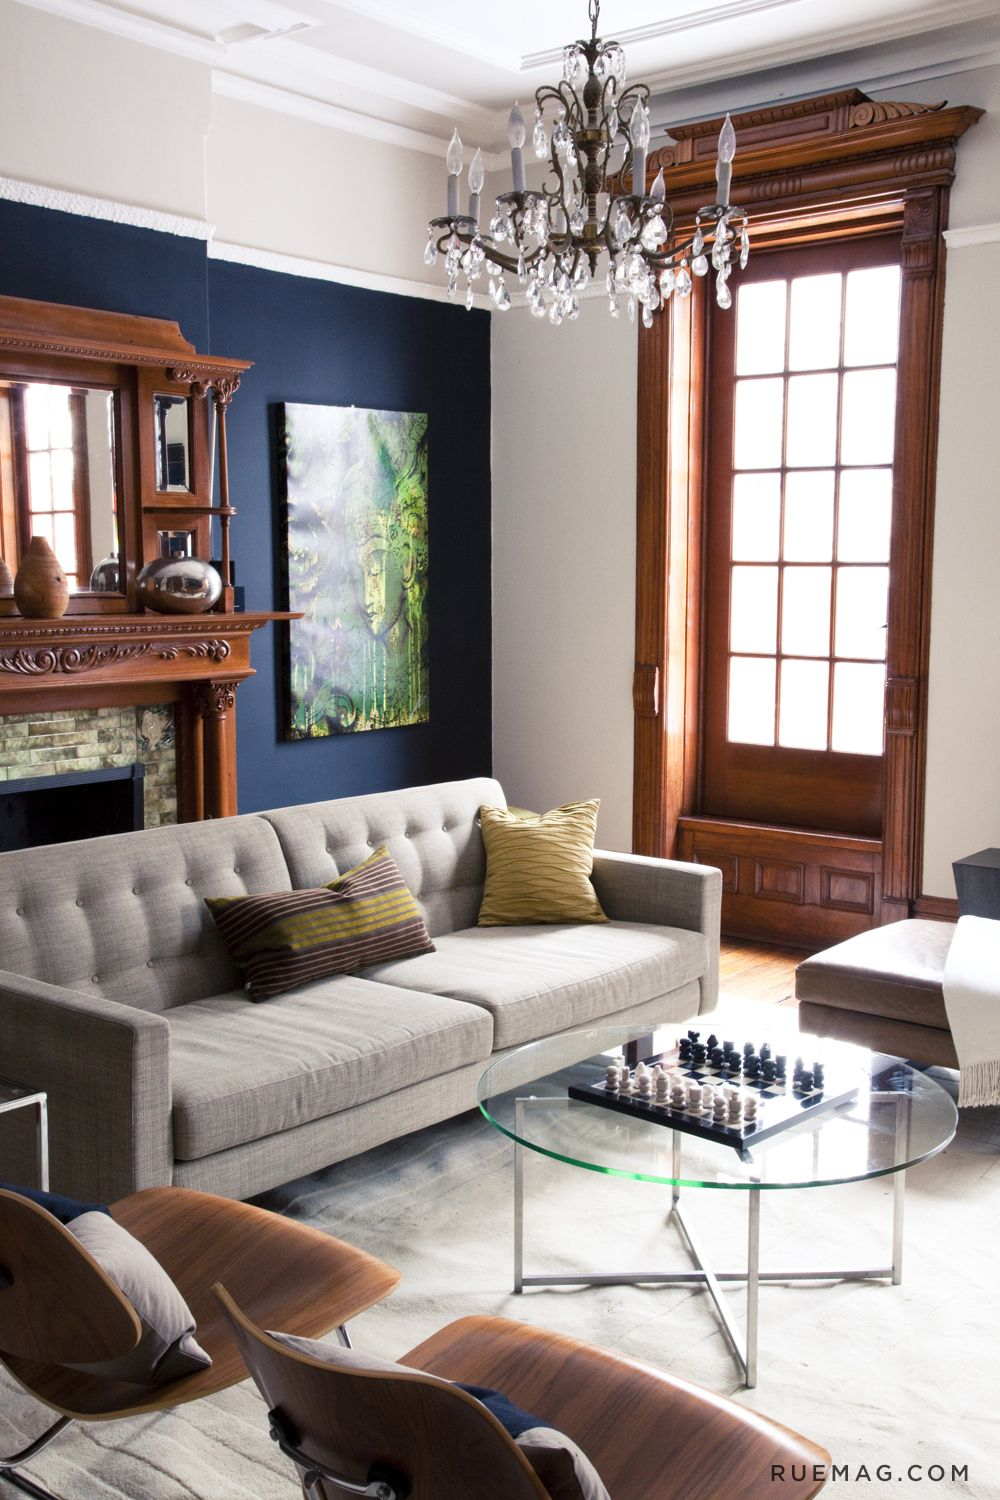 Color confidence colors that work well with wood trim stratus house pinterest living room paint and also rh